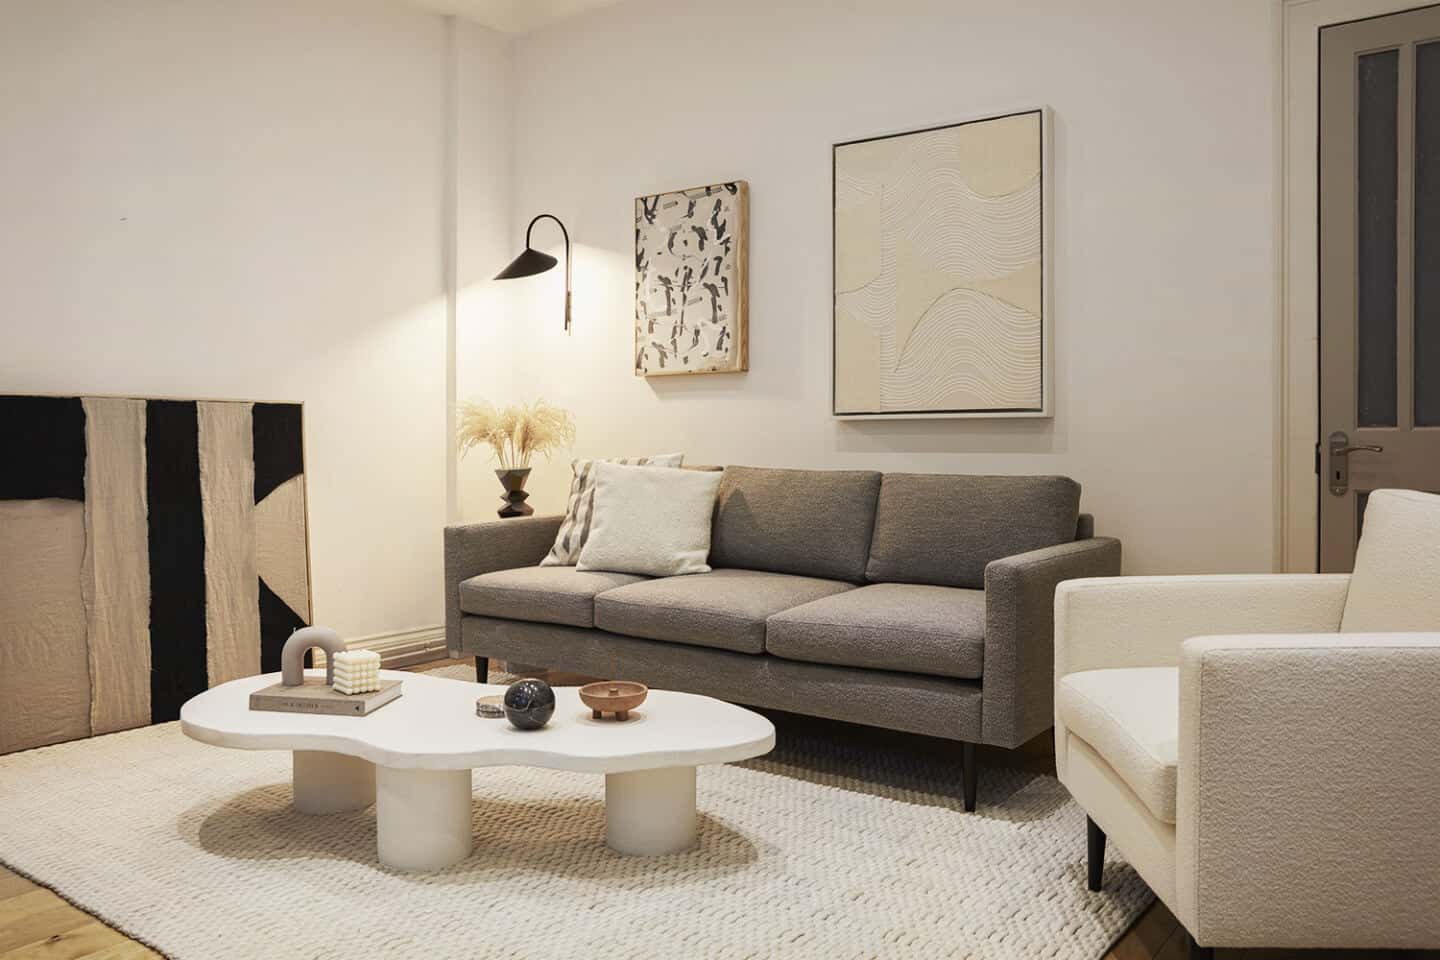 A neutral living room featuring a bouclé sofa collection designed by Interior designer Luke Arthur Wells in collaboration with Swyft Home